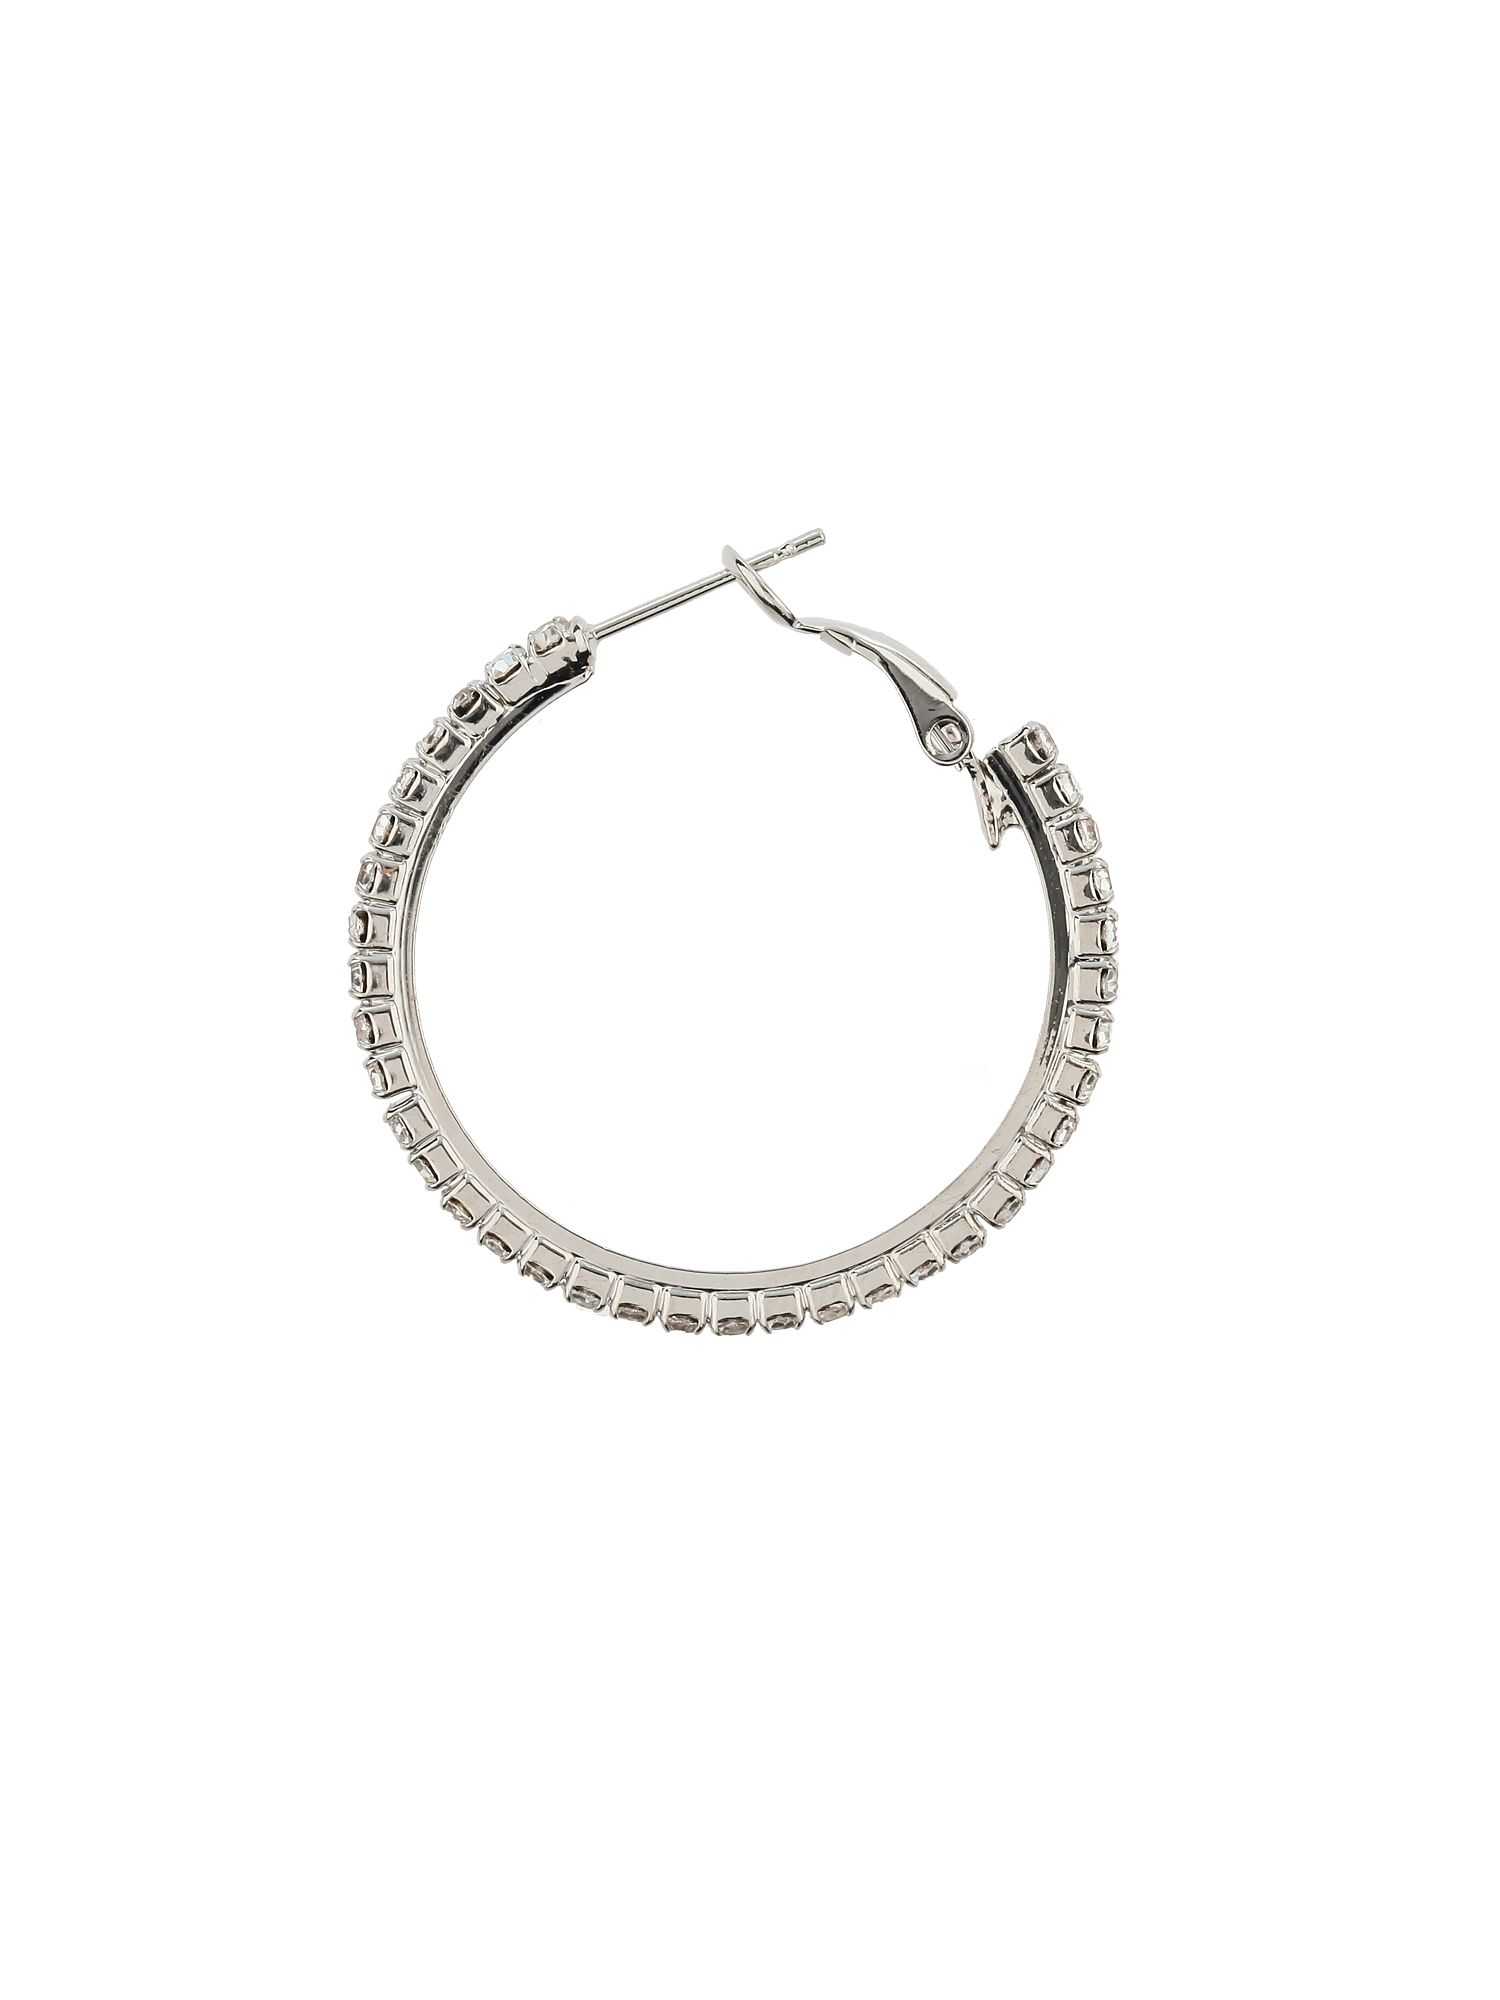 Thin hoop earrings